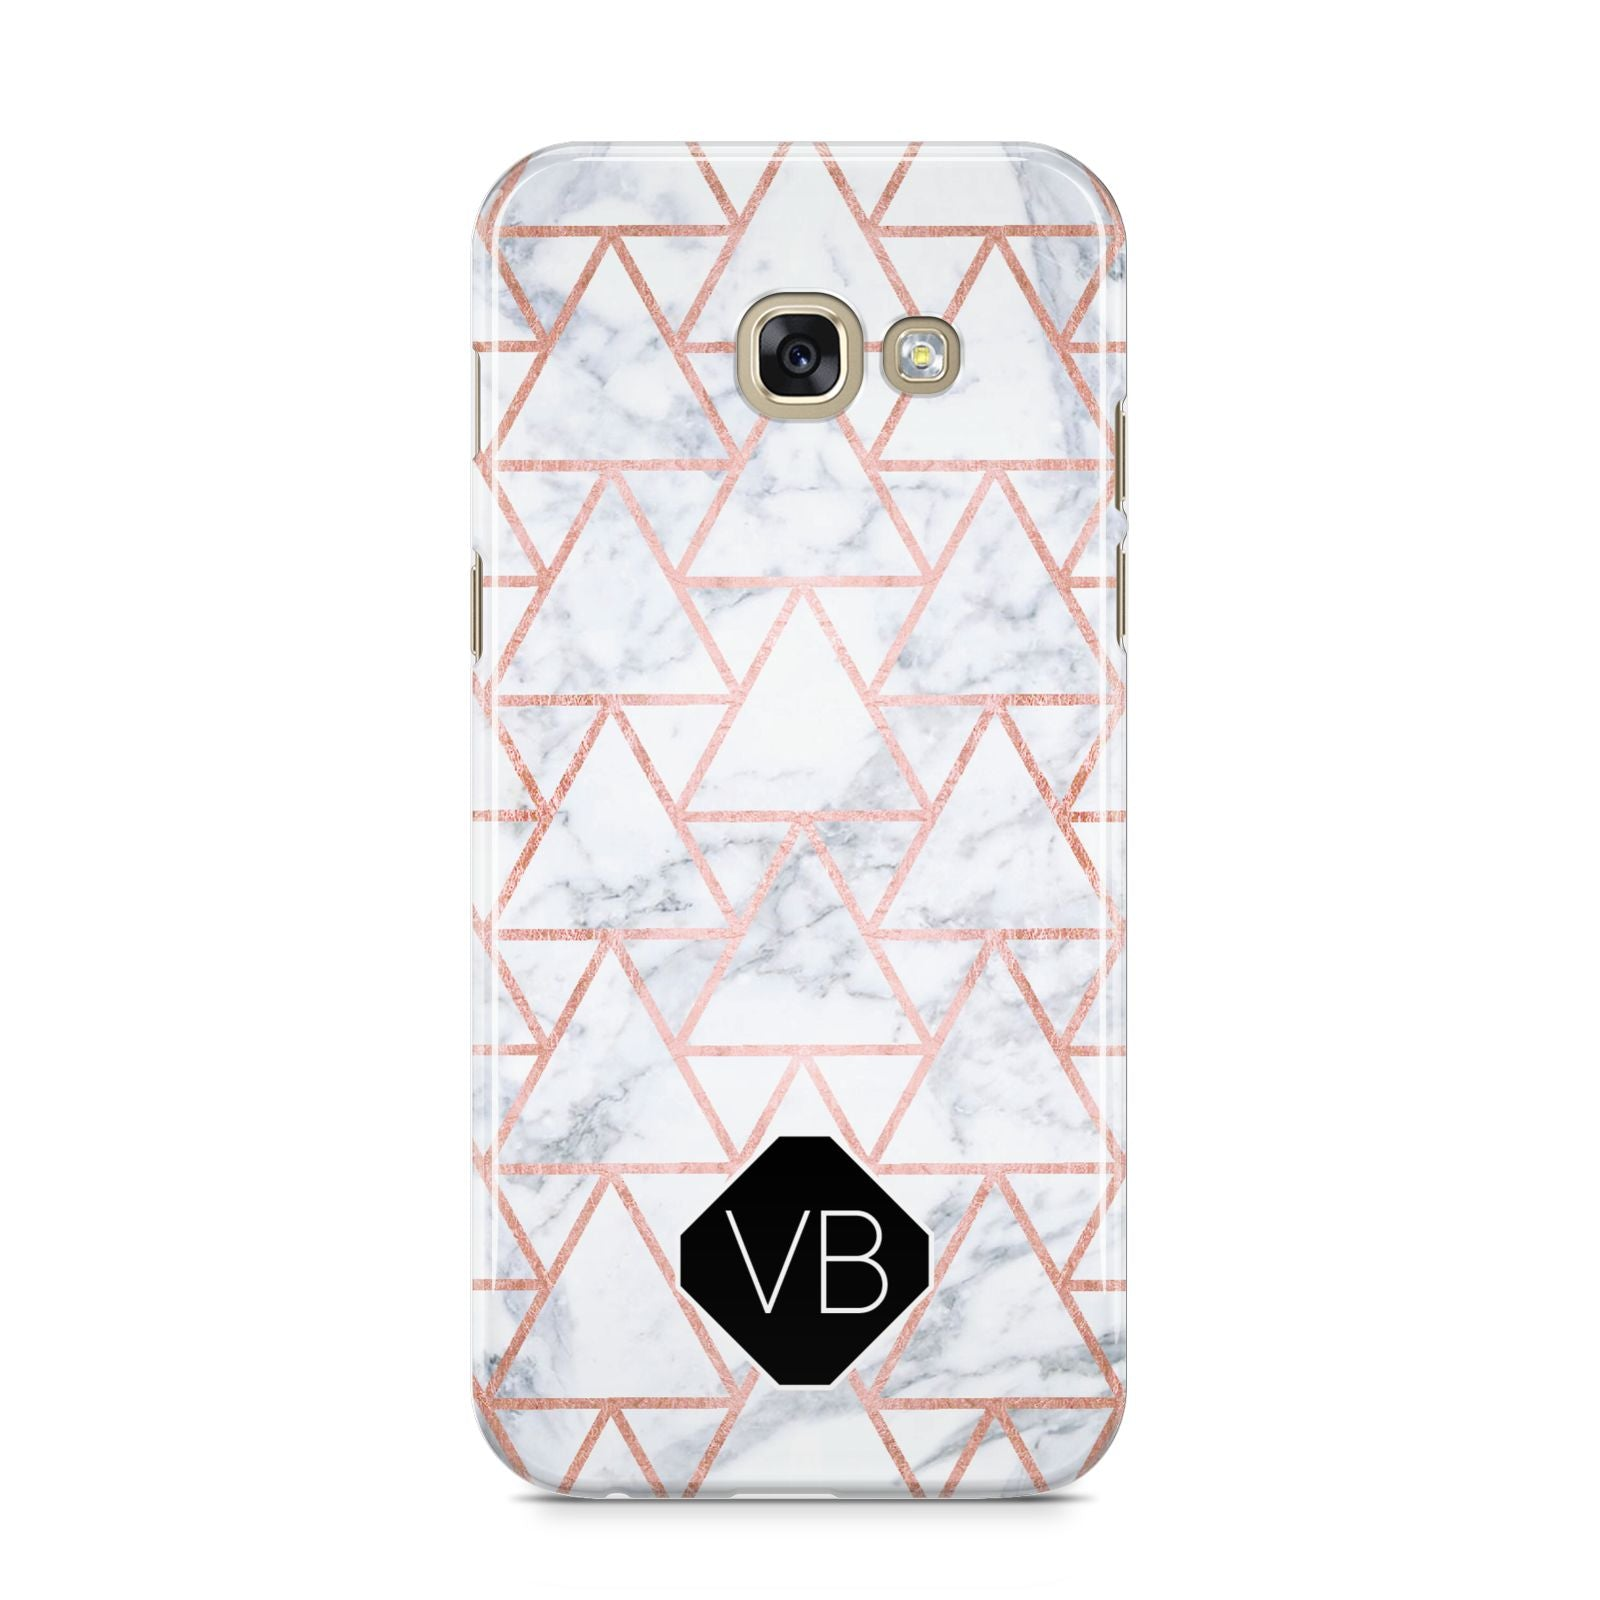 Personalised Rose Gold Grey Marble Hexagon Samsung Galaxy A5 2017 Case on gold phone